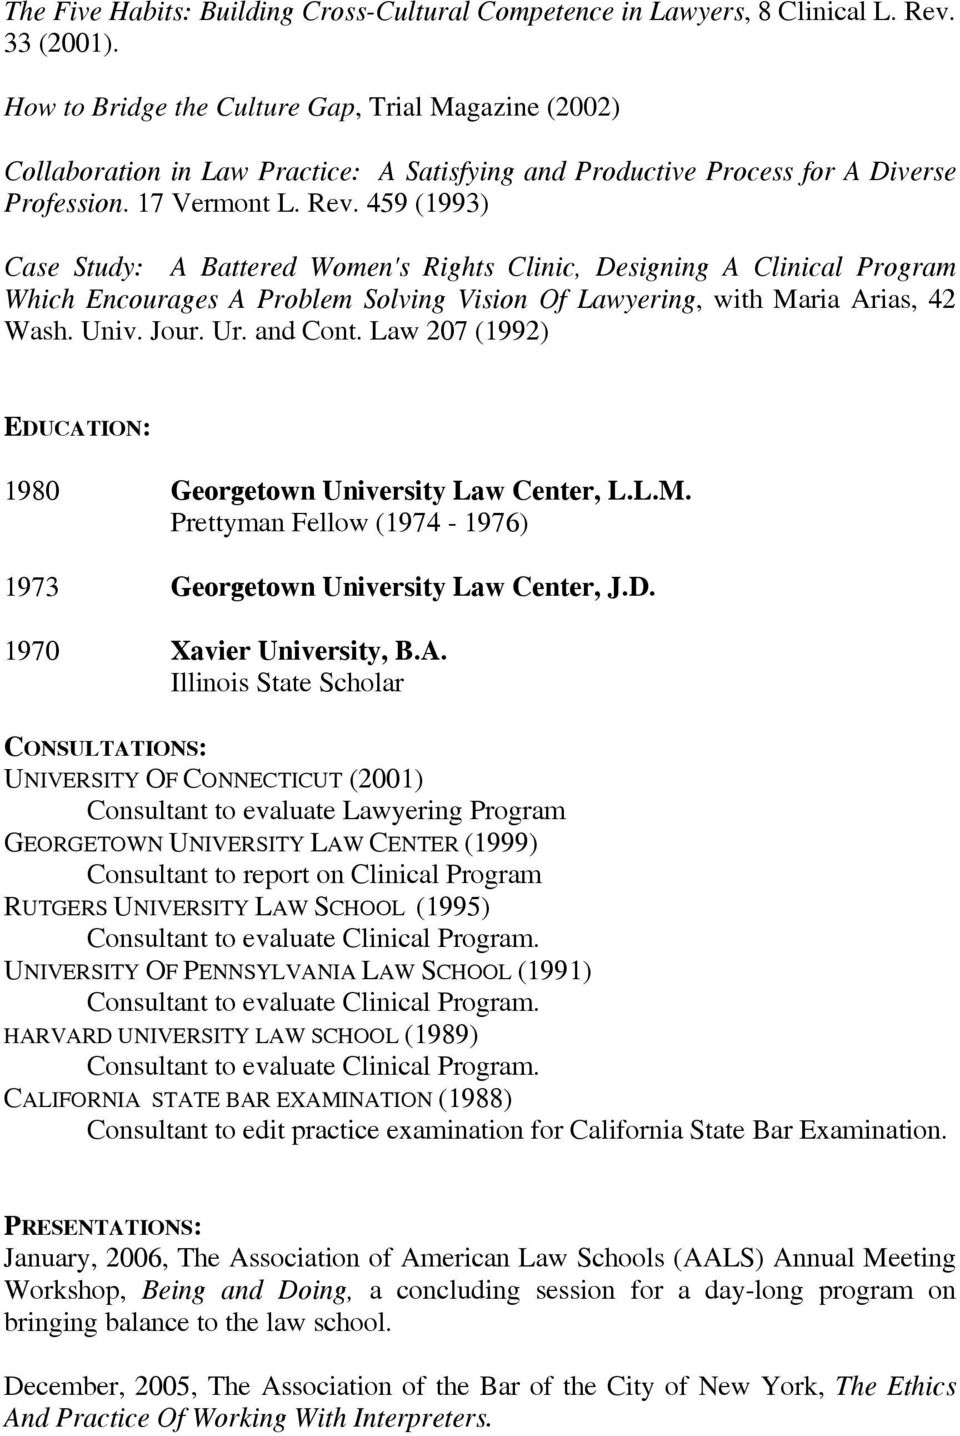 459 (1993) Case Study: A Battered Women's Rights Clinic, Designing A Clinical Program Which Encourages A Problem Solving Vision Of Lawyering, with Maria Arias, 42 Wash. Univ. Jour. Ur. and Cont.